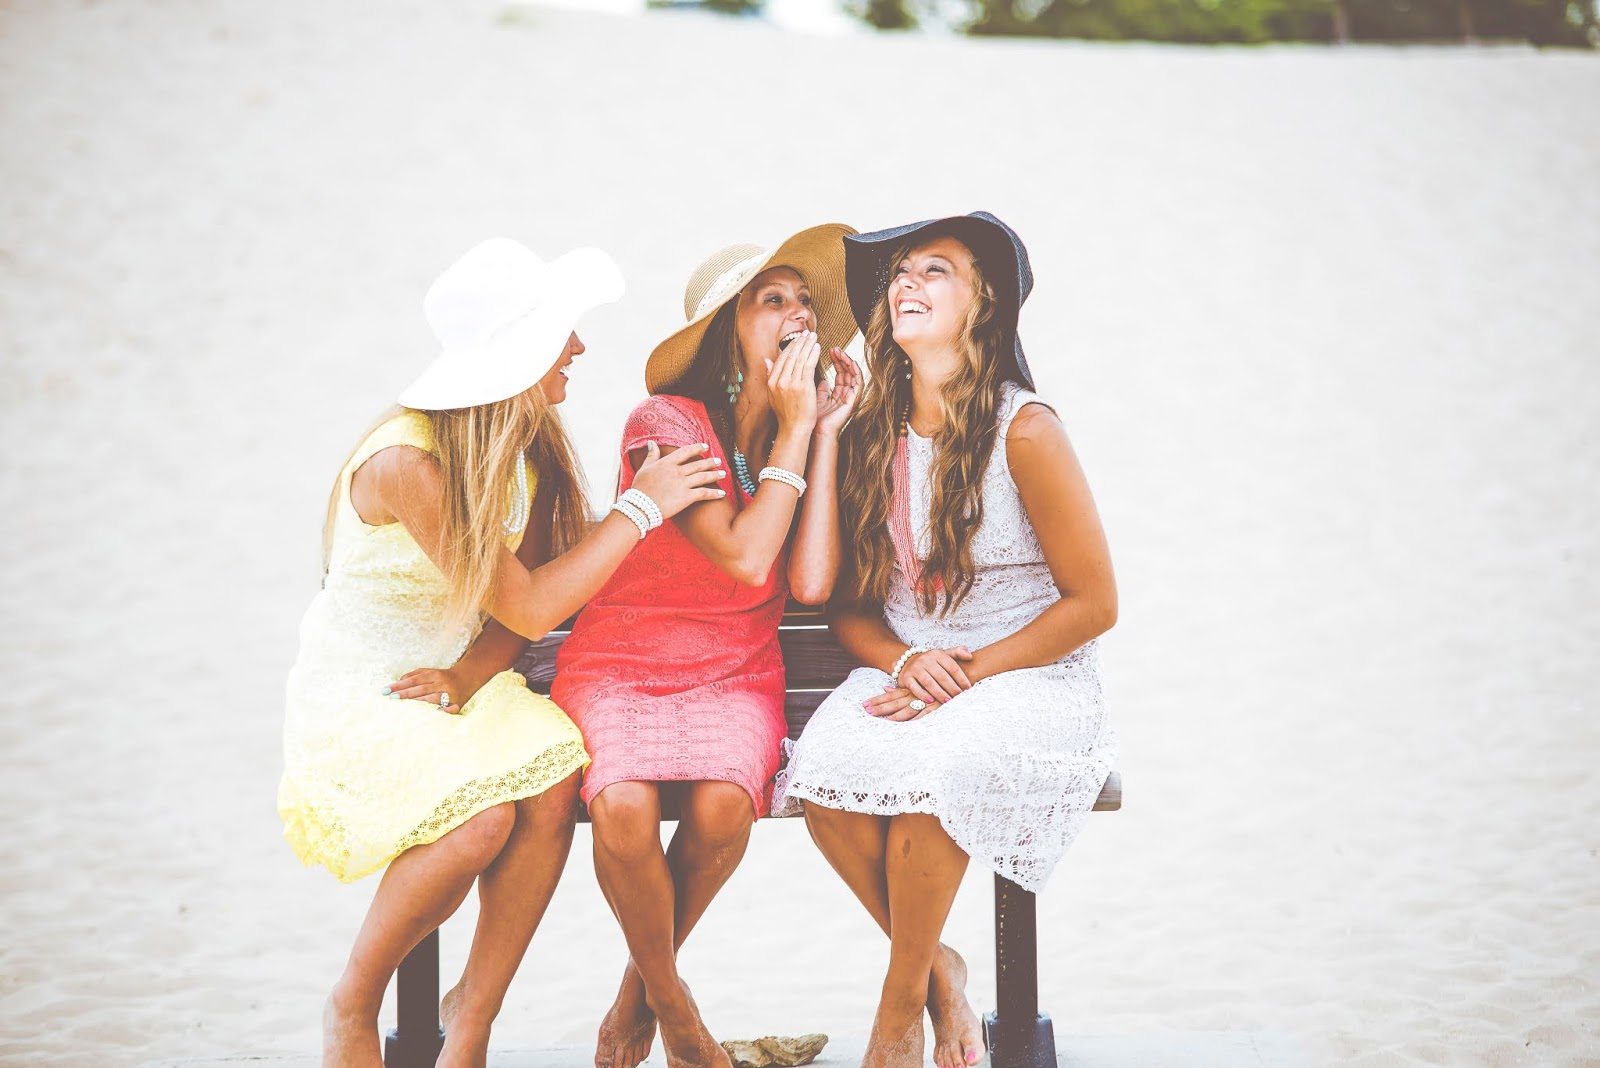 History of Gossip: The So-Called 'Women' Thing